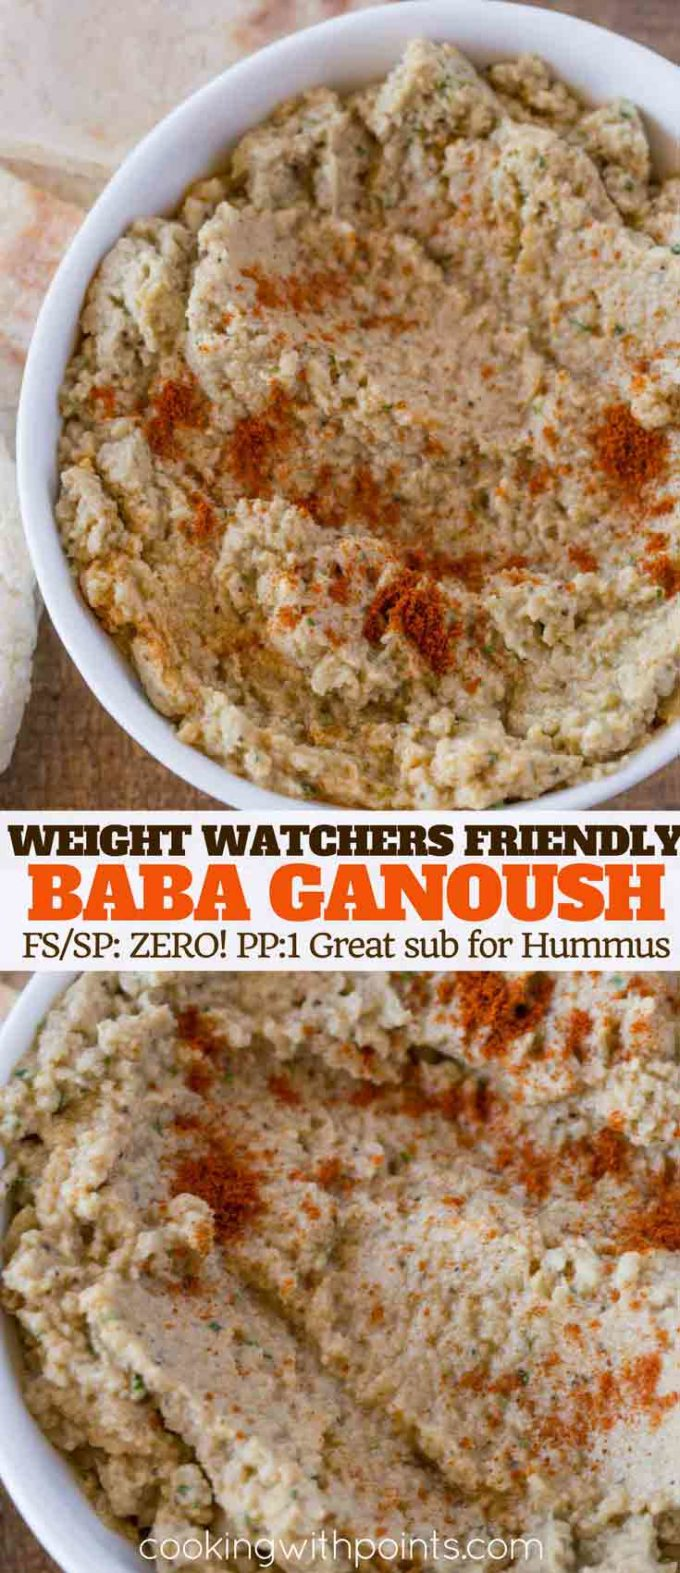 Baba Ganoush Weight Watchers